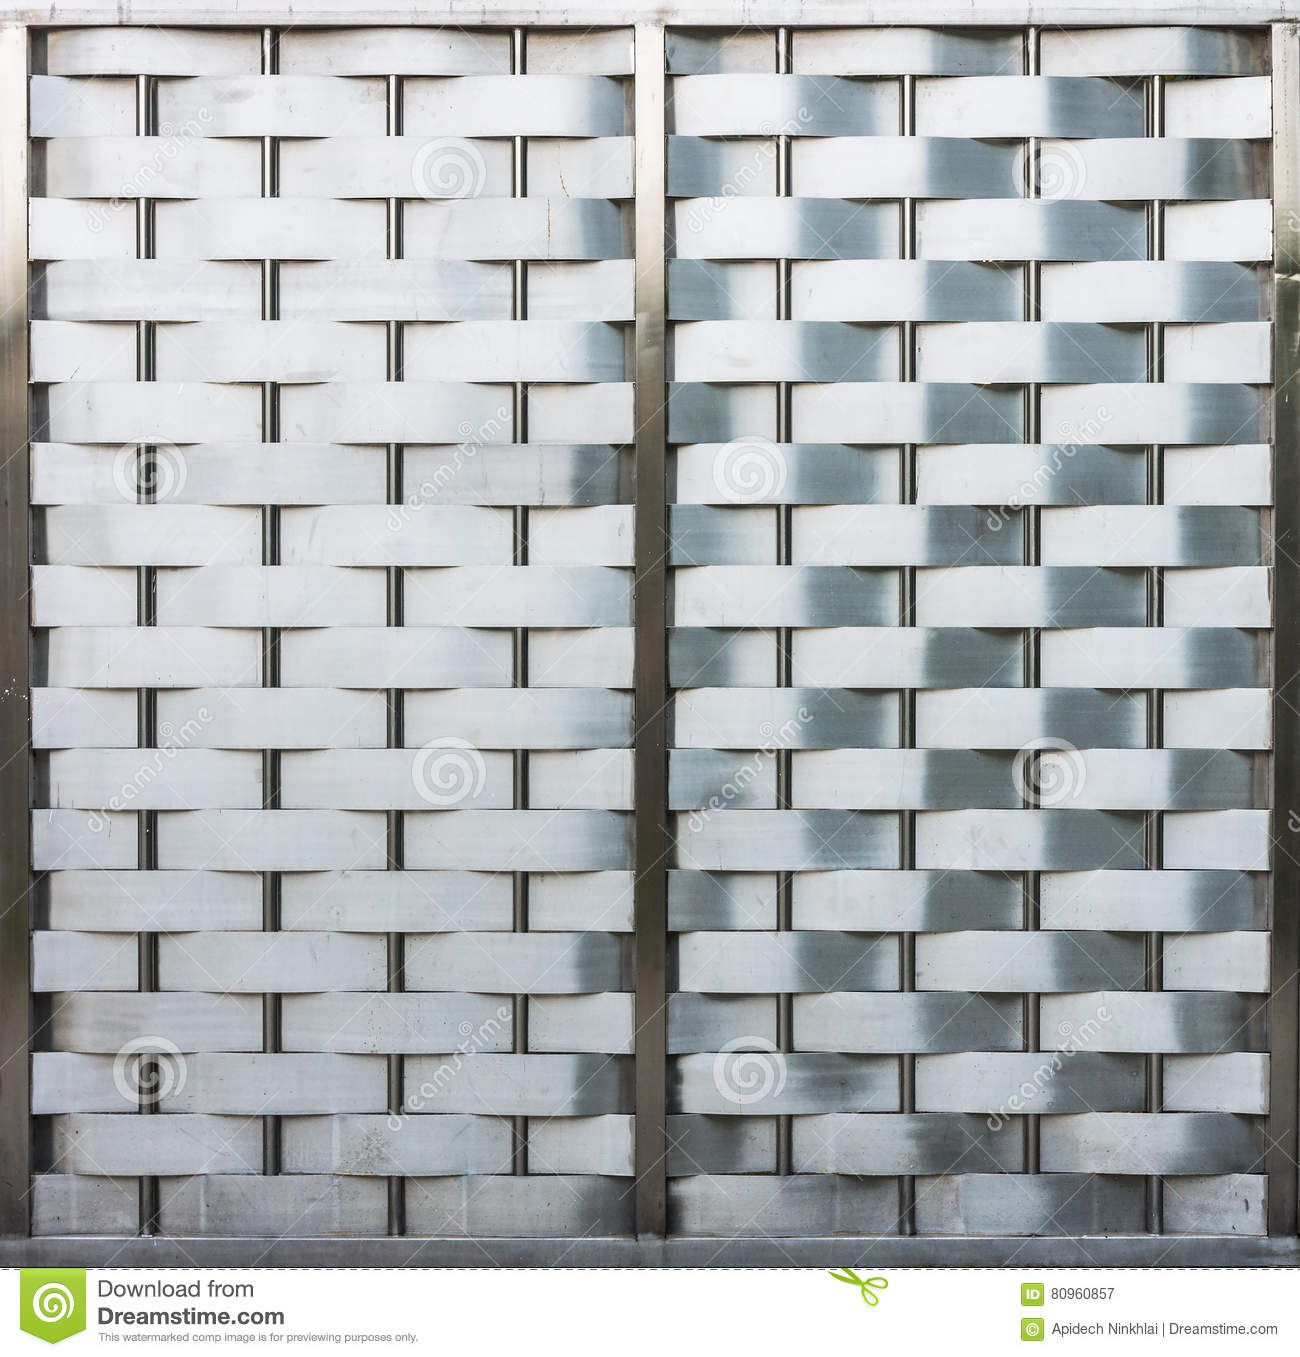 Weave Metallic Wall With Metal Frame Stock Image - Image of ...